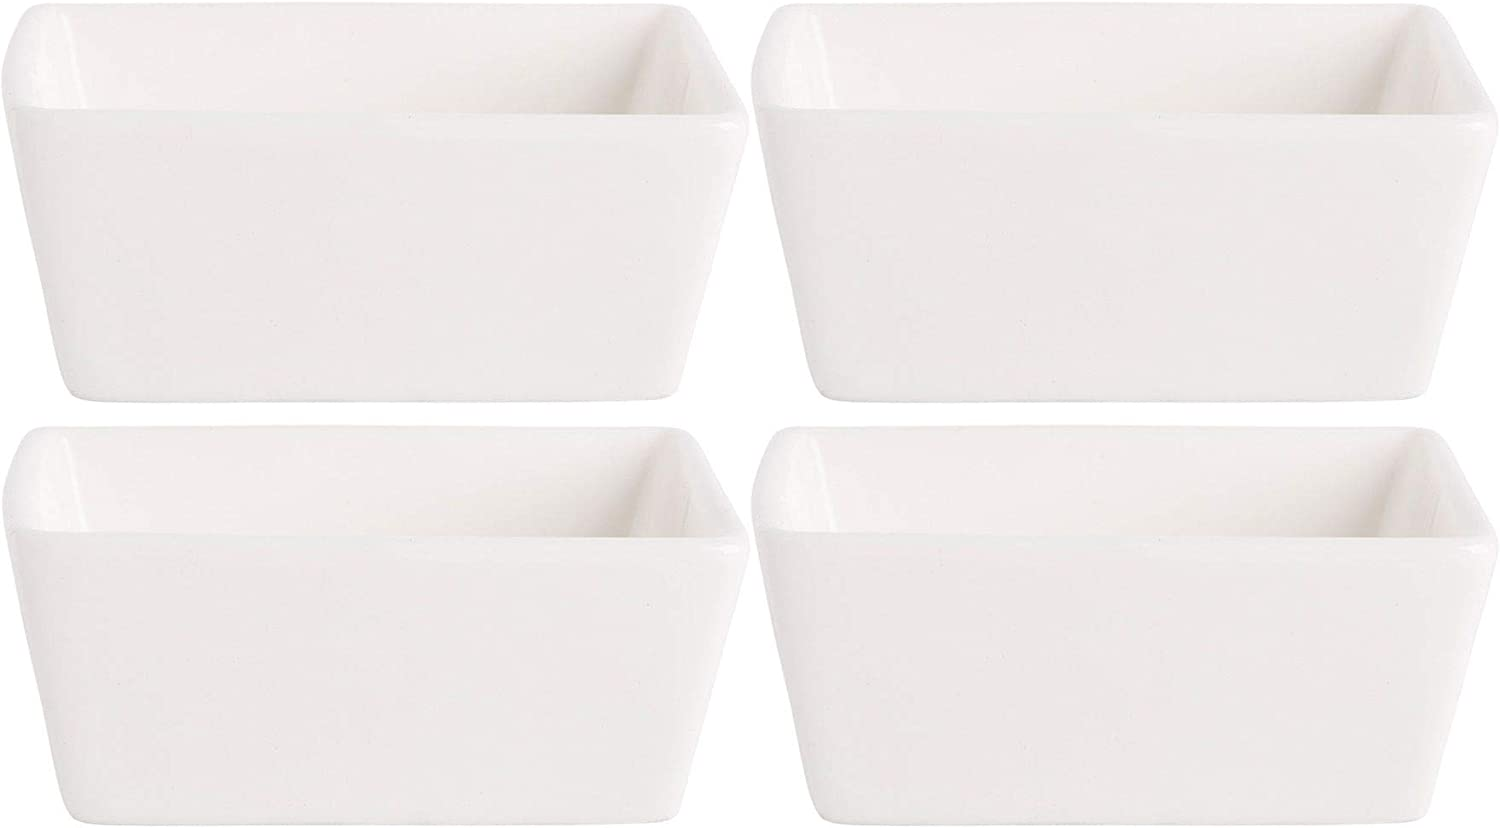 Home Essentials 15241 Fiddle and Fern Square Mini Taster Bowls, Set of 4, 5 Oz